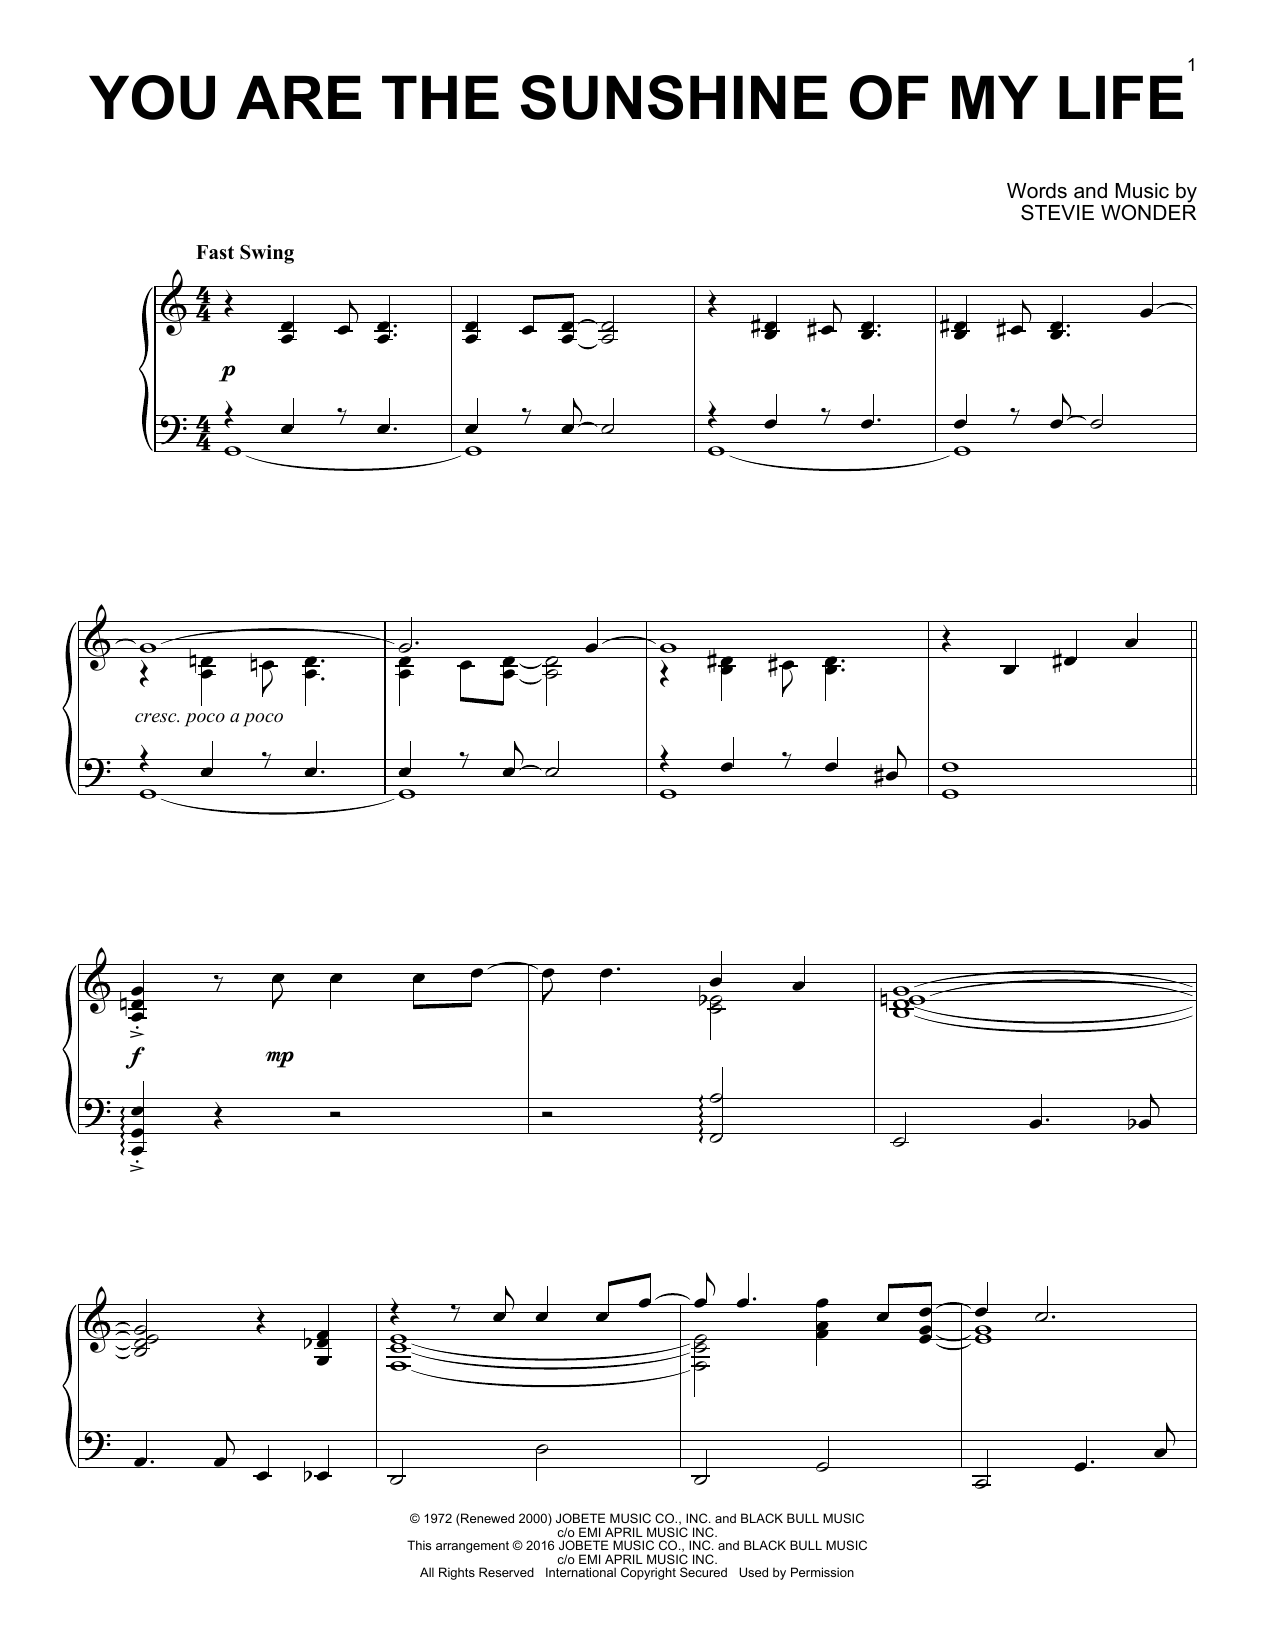 Stevie Wonder You Are The Sunshine Of My Life [Jazz version] sheet music notes and chords. Download Printable PDF.